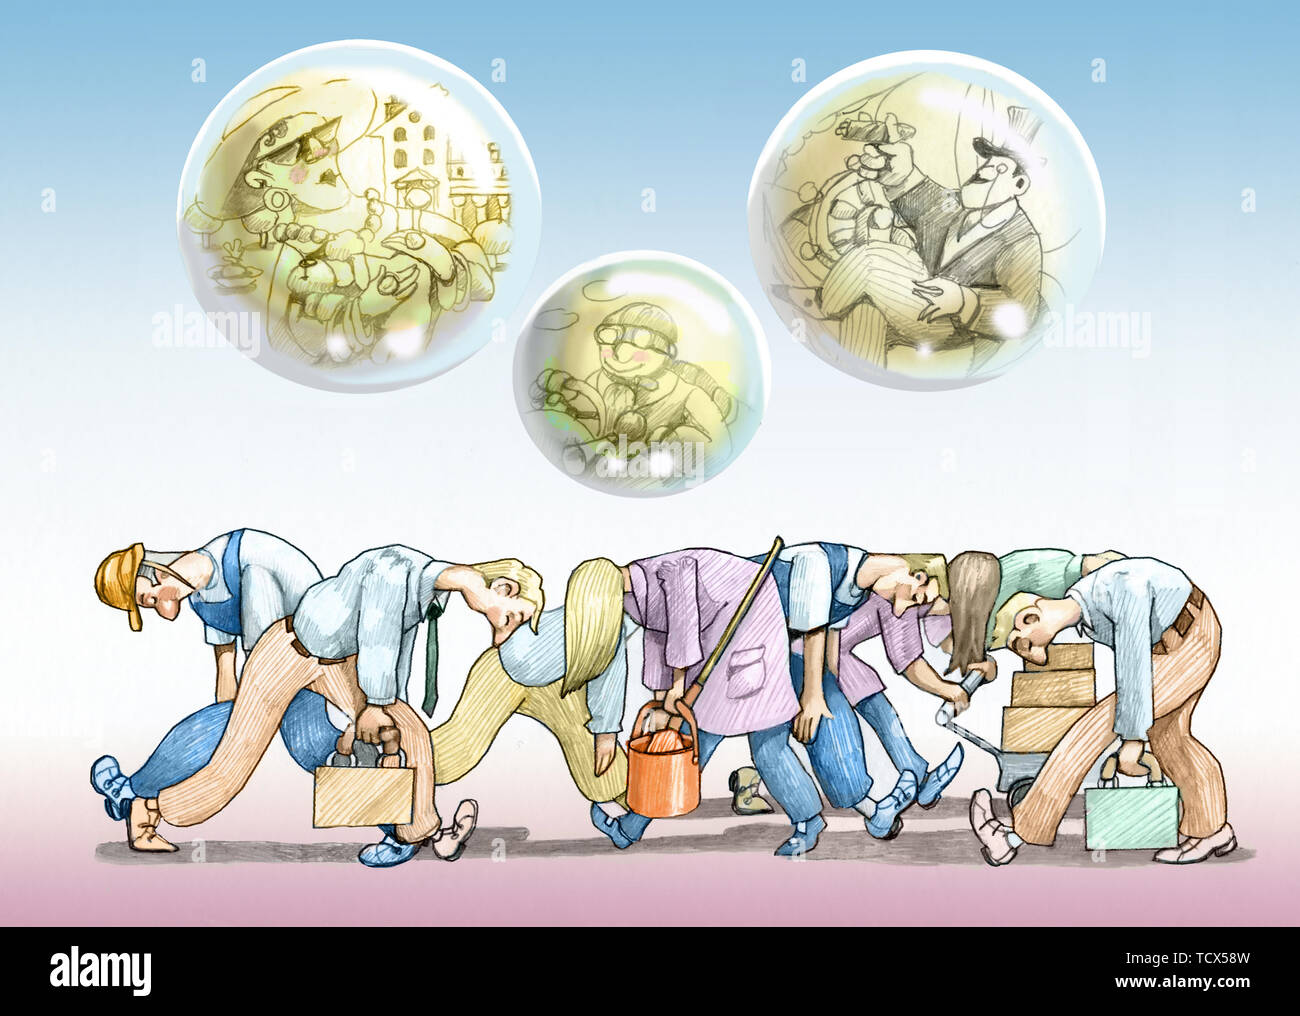 row of tired workers walk bent above them bubbles of soap with a few rich far from reality metaphor of social injustice - Stock Image